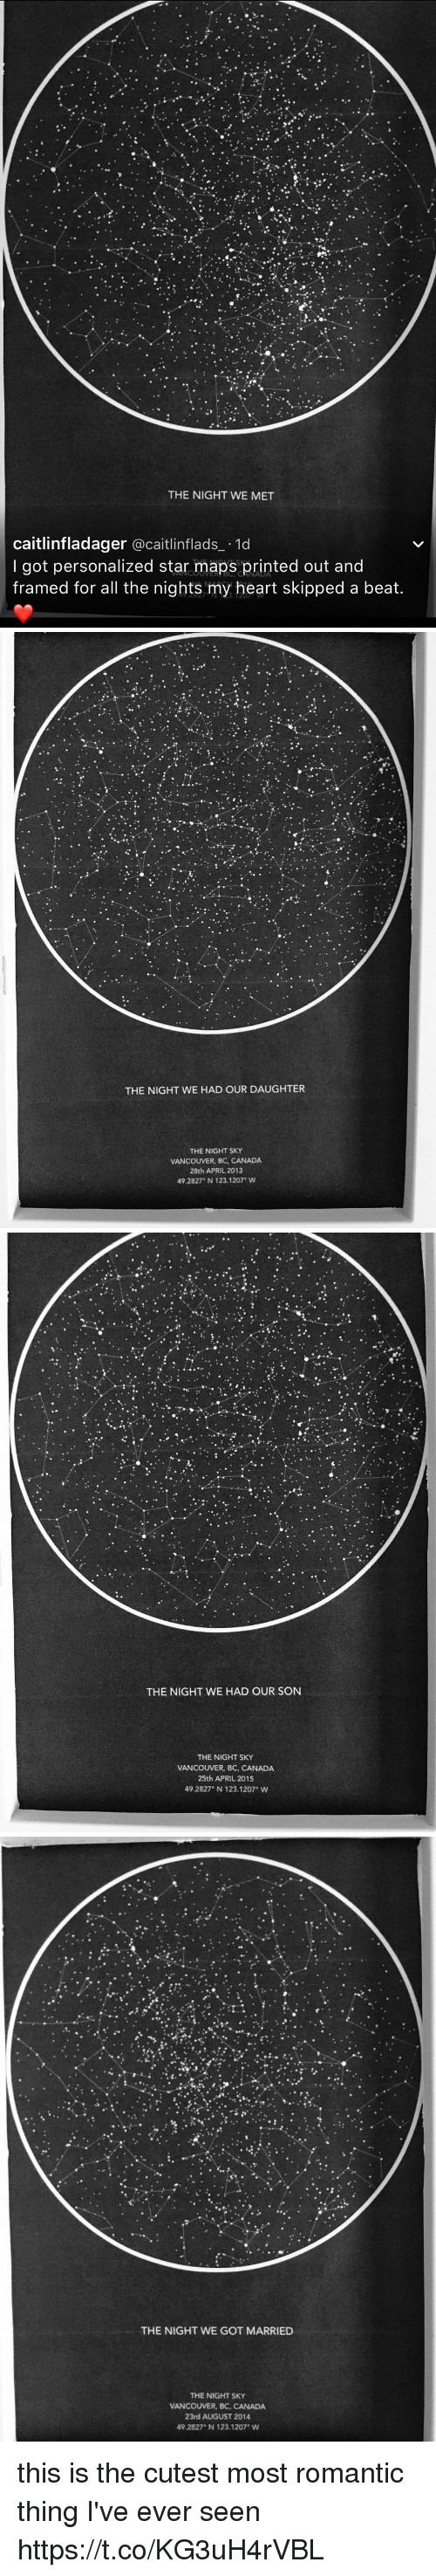 Canada, Heart, and Maps: THE NIGHT WE MET  caitlinfladager  acaitlinflads 1d  I got personalized star maps printed out and  framed for all the nights my heart skipped a beat.   THE NIGHT WE HAD OUR DAUGHTER  THE NIGHT SKY  VANCOUVER, BC, CANADA  28th APRIL 2013  49.2827 N 123.1207 W   THE NIGHT WE HAD OUR SON  THE NIGHT SKY  VANCOUVER, BC, CANADA  25th APRIL 2015  49.2827 N 123.1207° W   THE NIGHT WE GOT MARRIED  THE NIGHT SKY  VANCOUVER, BC, CANADA  23rd AUGUST 2014  49.2827 N 123.1207 W this is the cutest most romantic thing I've ever seen https://t.co/KG3uH4rVBL